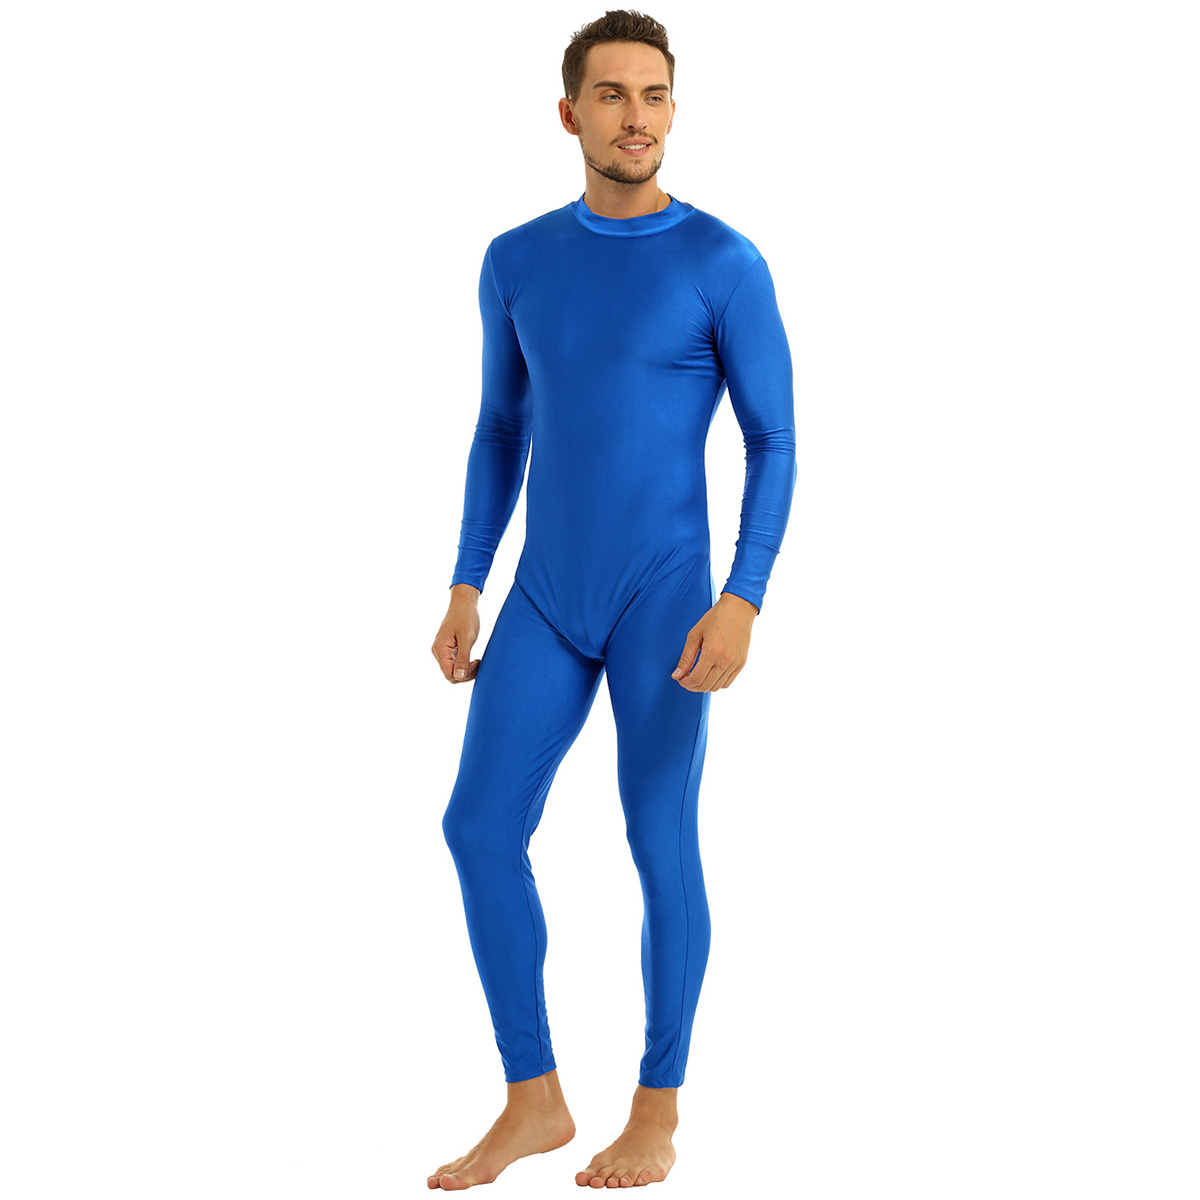 Mens Well Fit One Piece Leotards Long Sleeves Skinny Full-body Catsuit Adult Lycra Dancewear Bodysuit Gymnastics Workout Unitard 35